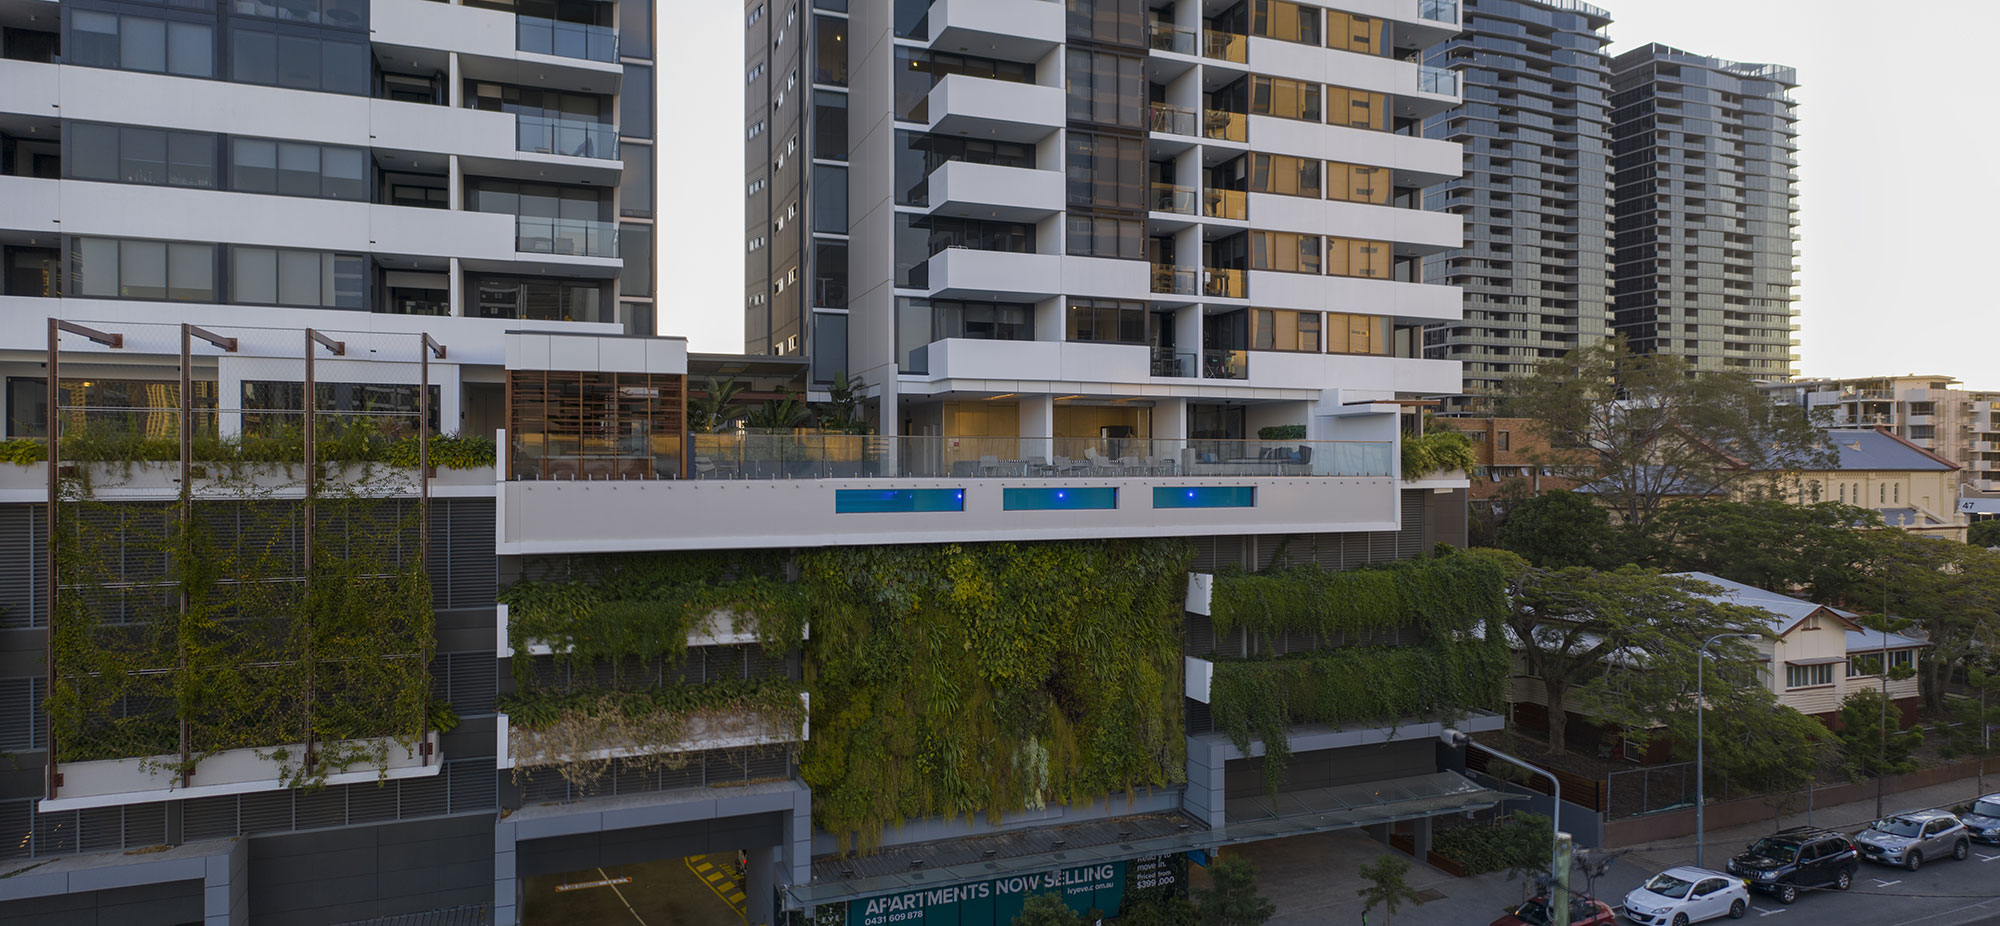 drone photography from the gym for South Brisbane apartment development 3D Render backgrounds